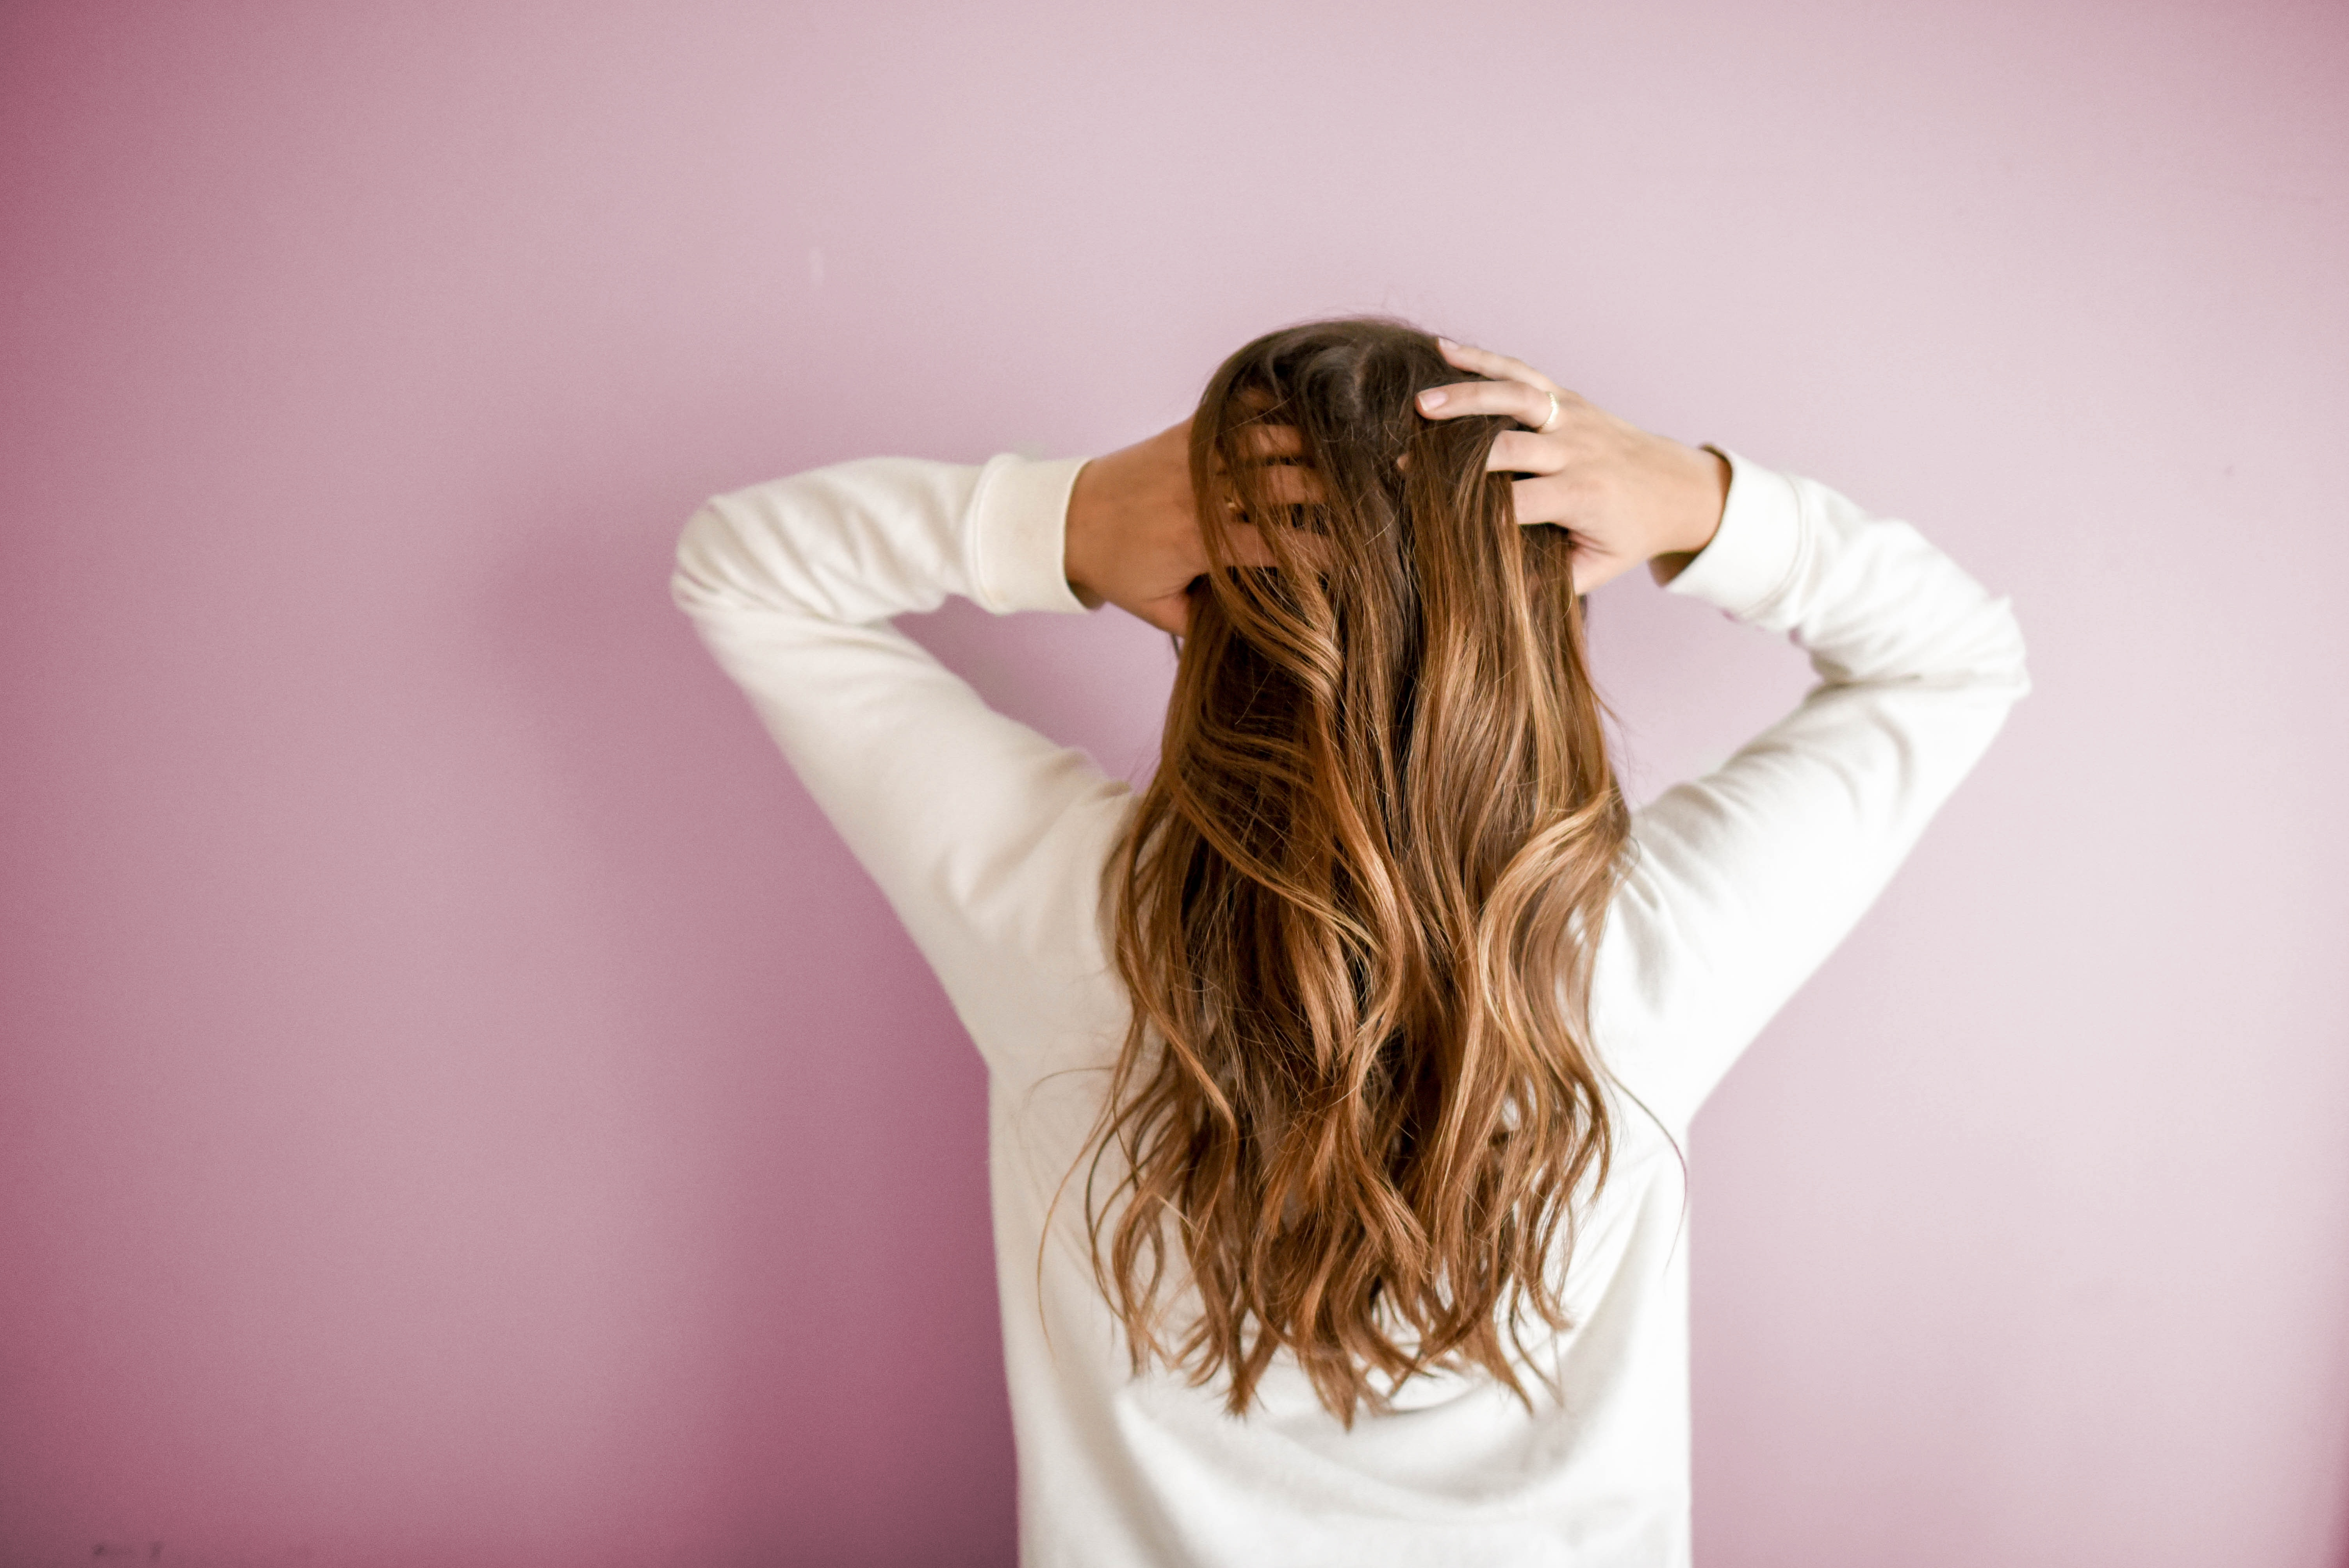 Woman with long brunette hair holding her head